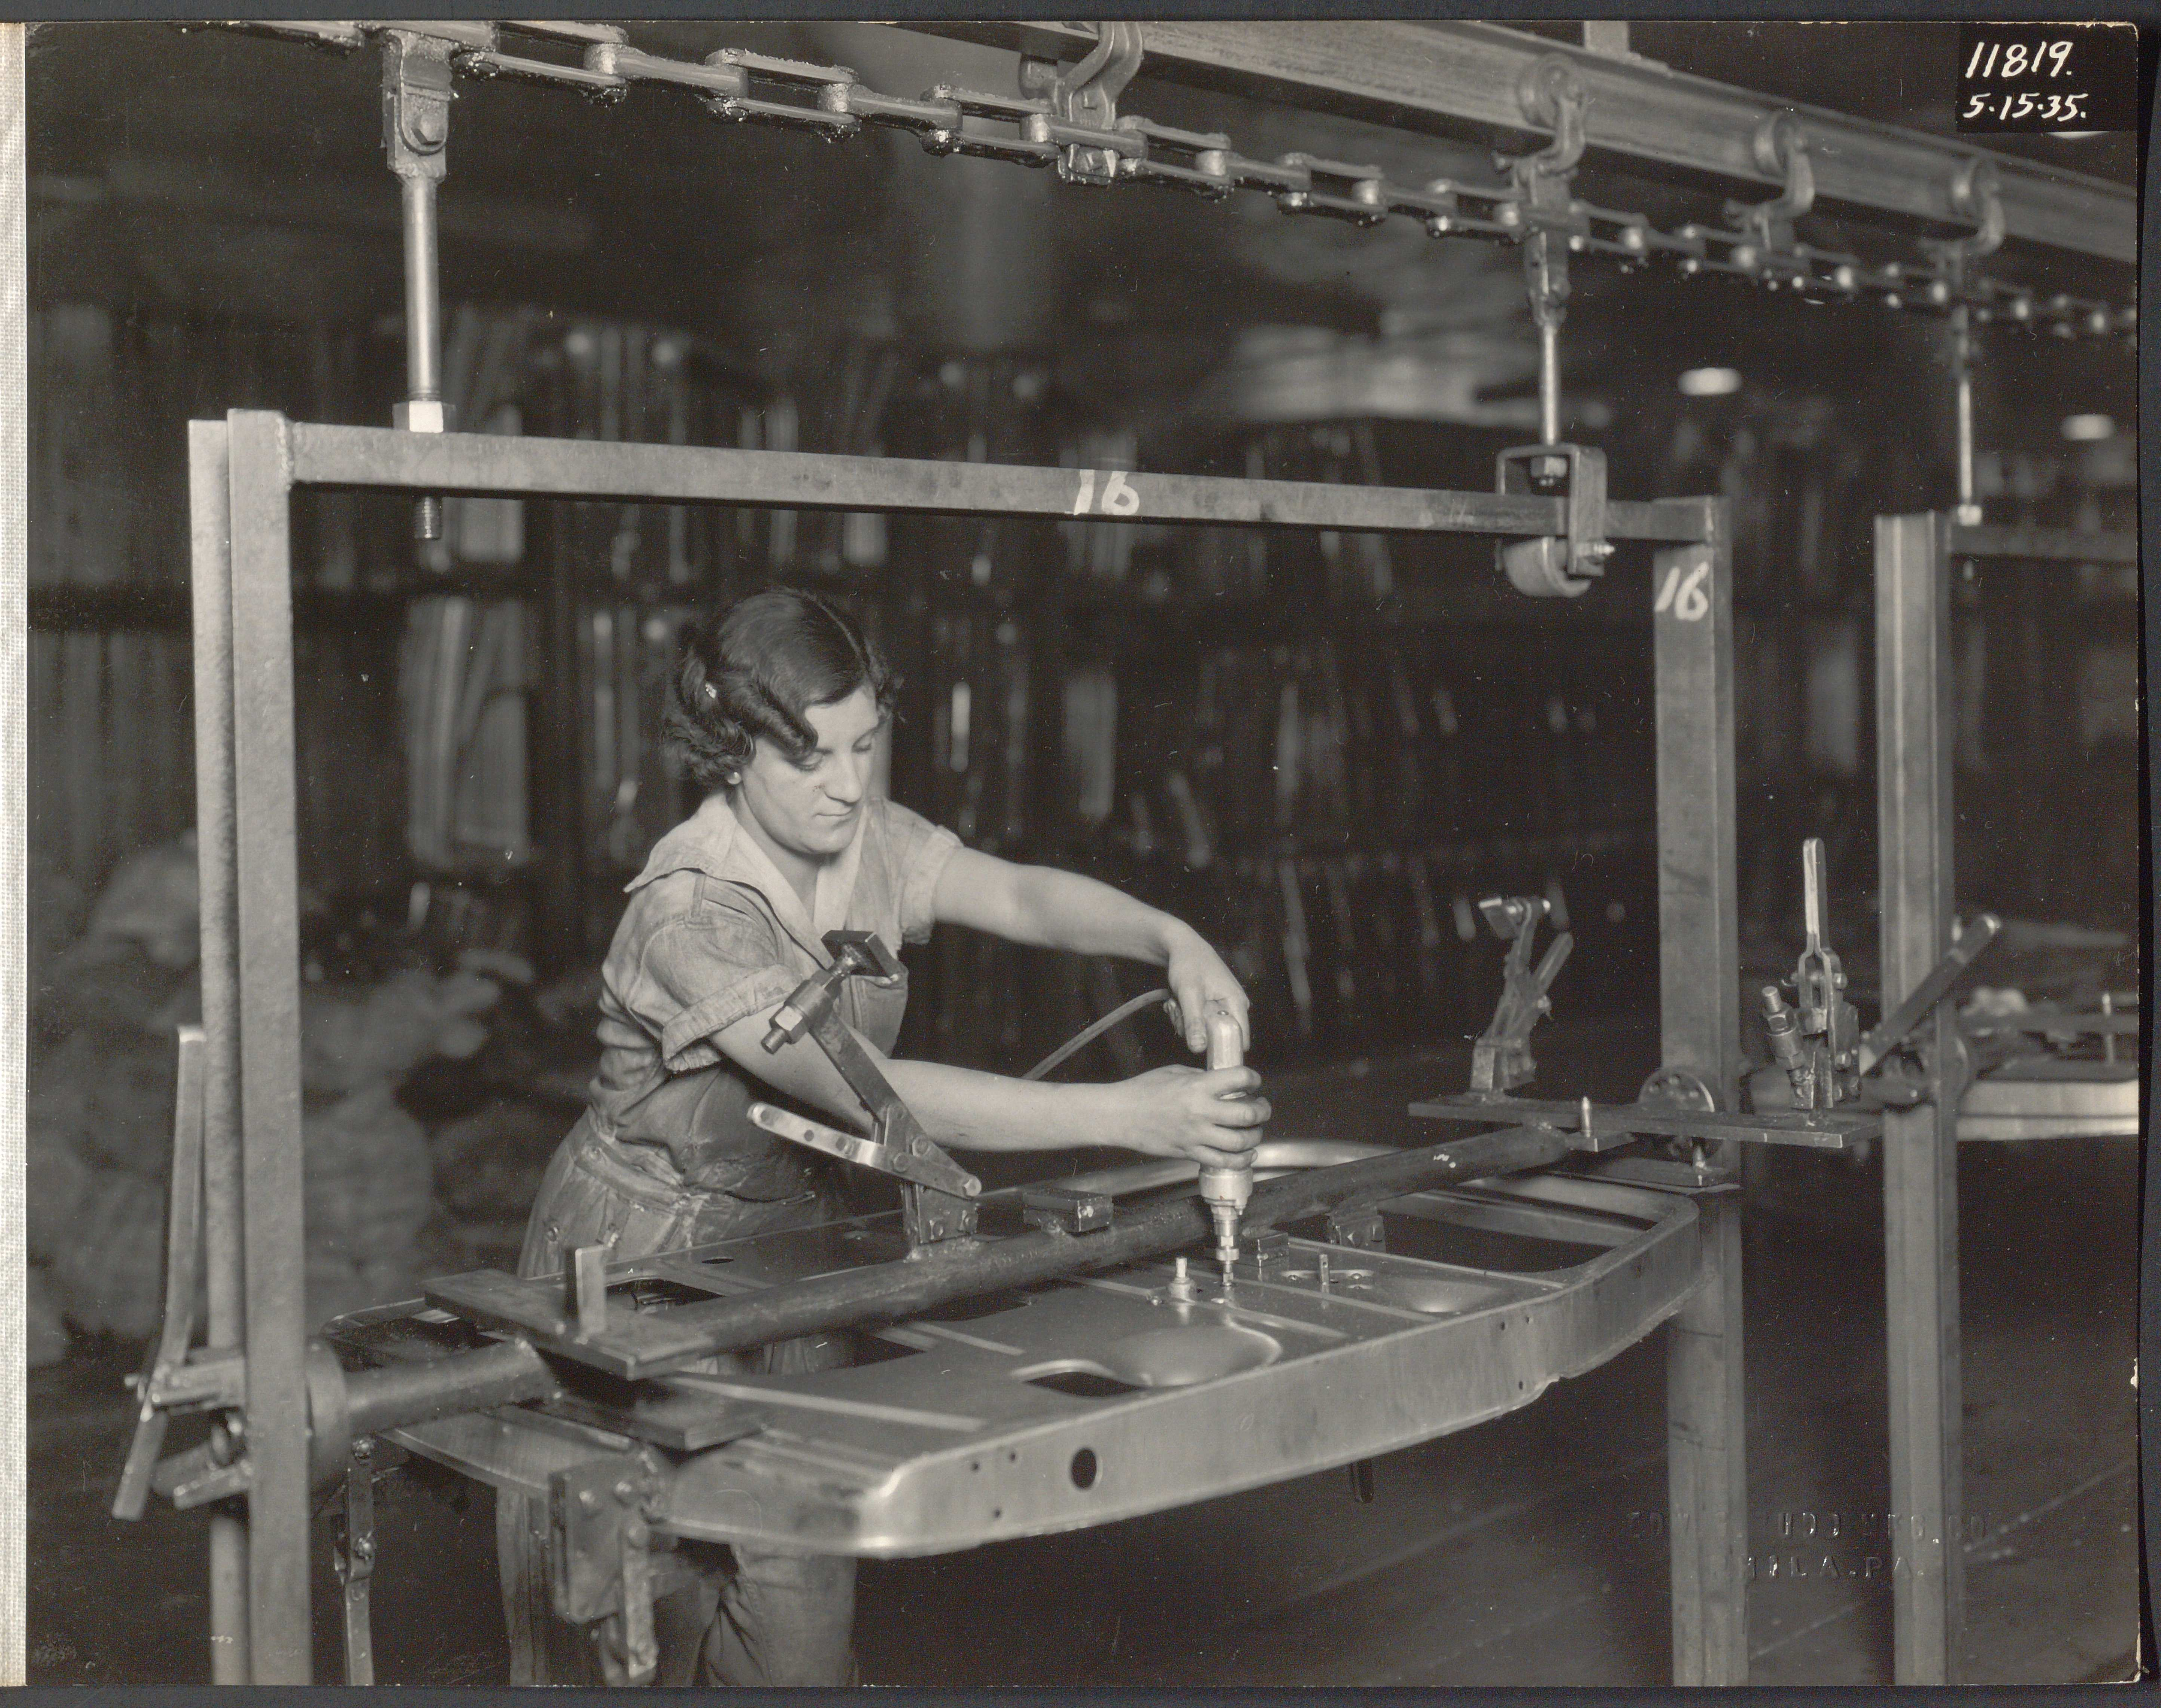 Black and white photograph of a woman in overalls applying fasteners to a metal door panel.